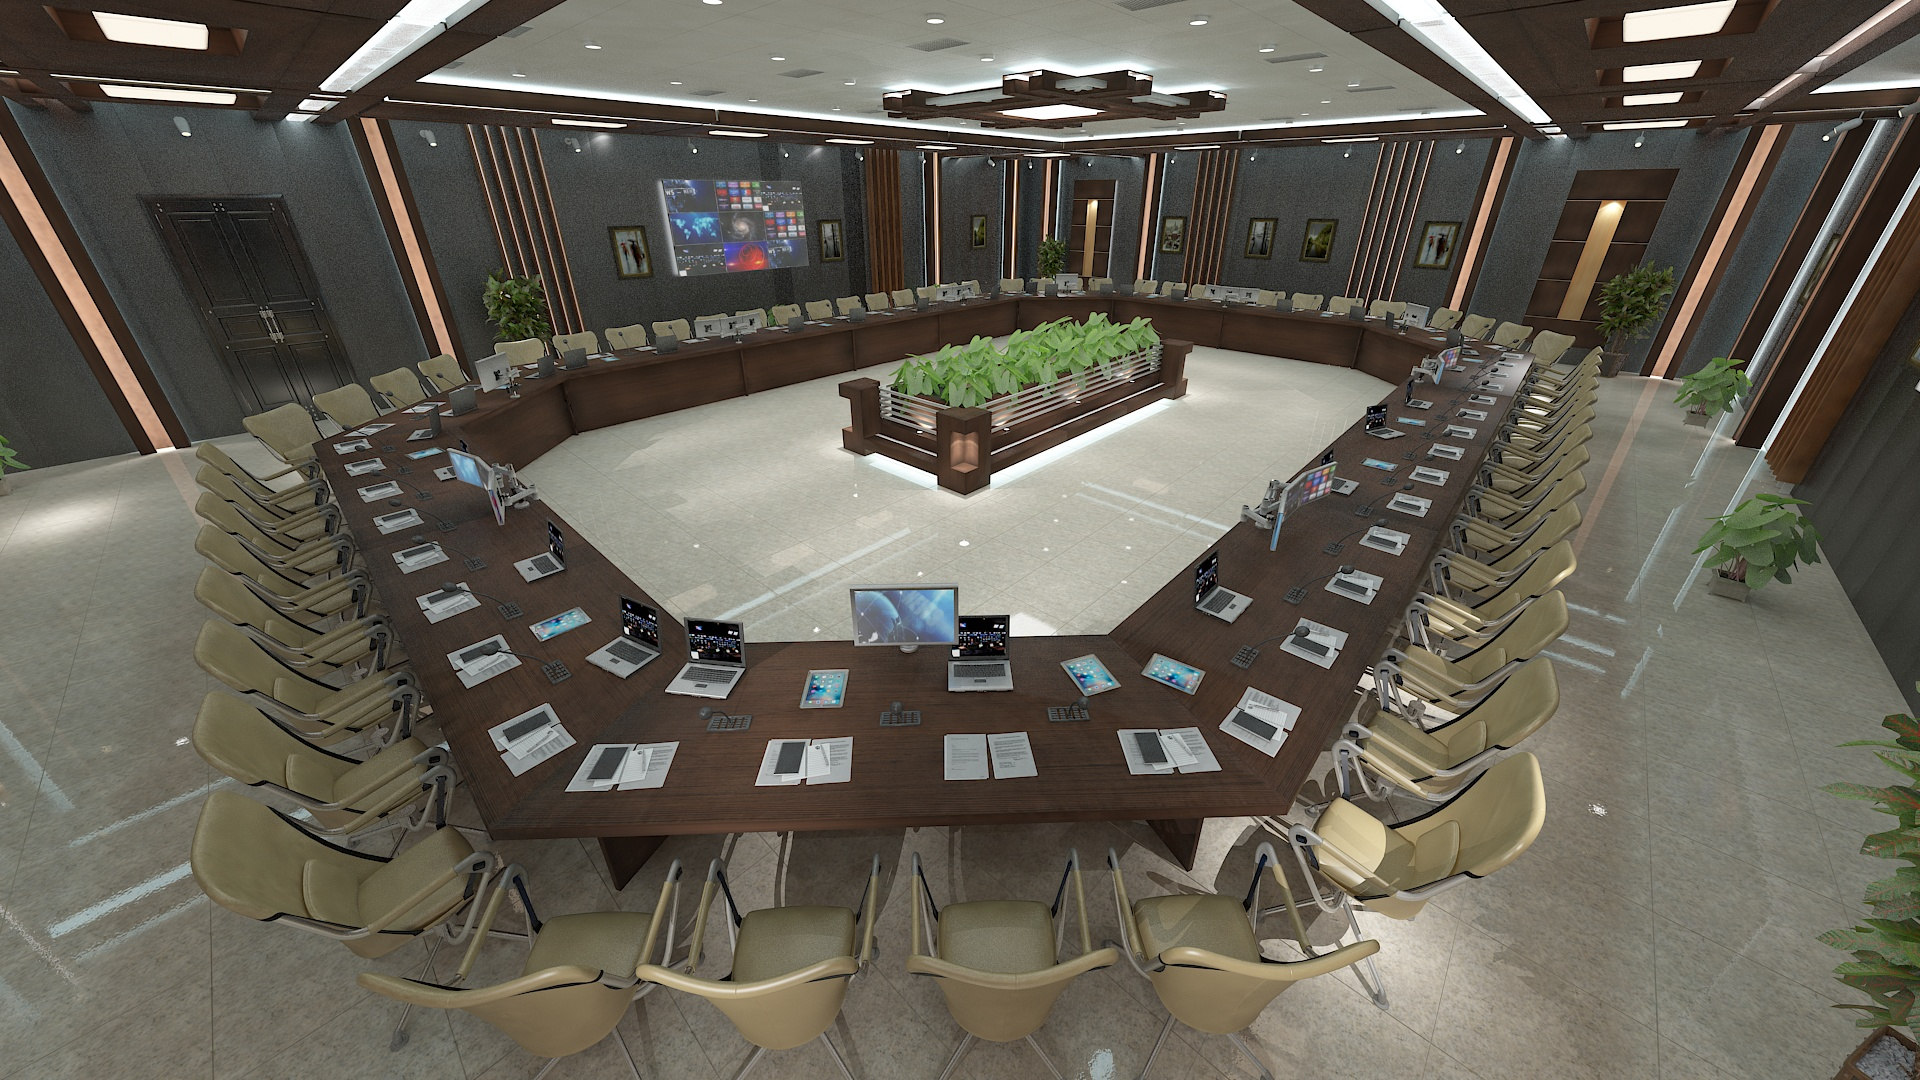 meeting room 1 3d model 3ds max dxf dwg 288116